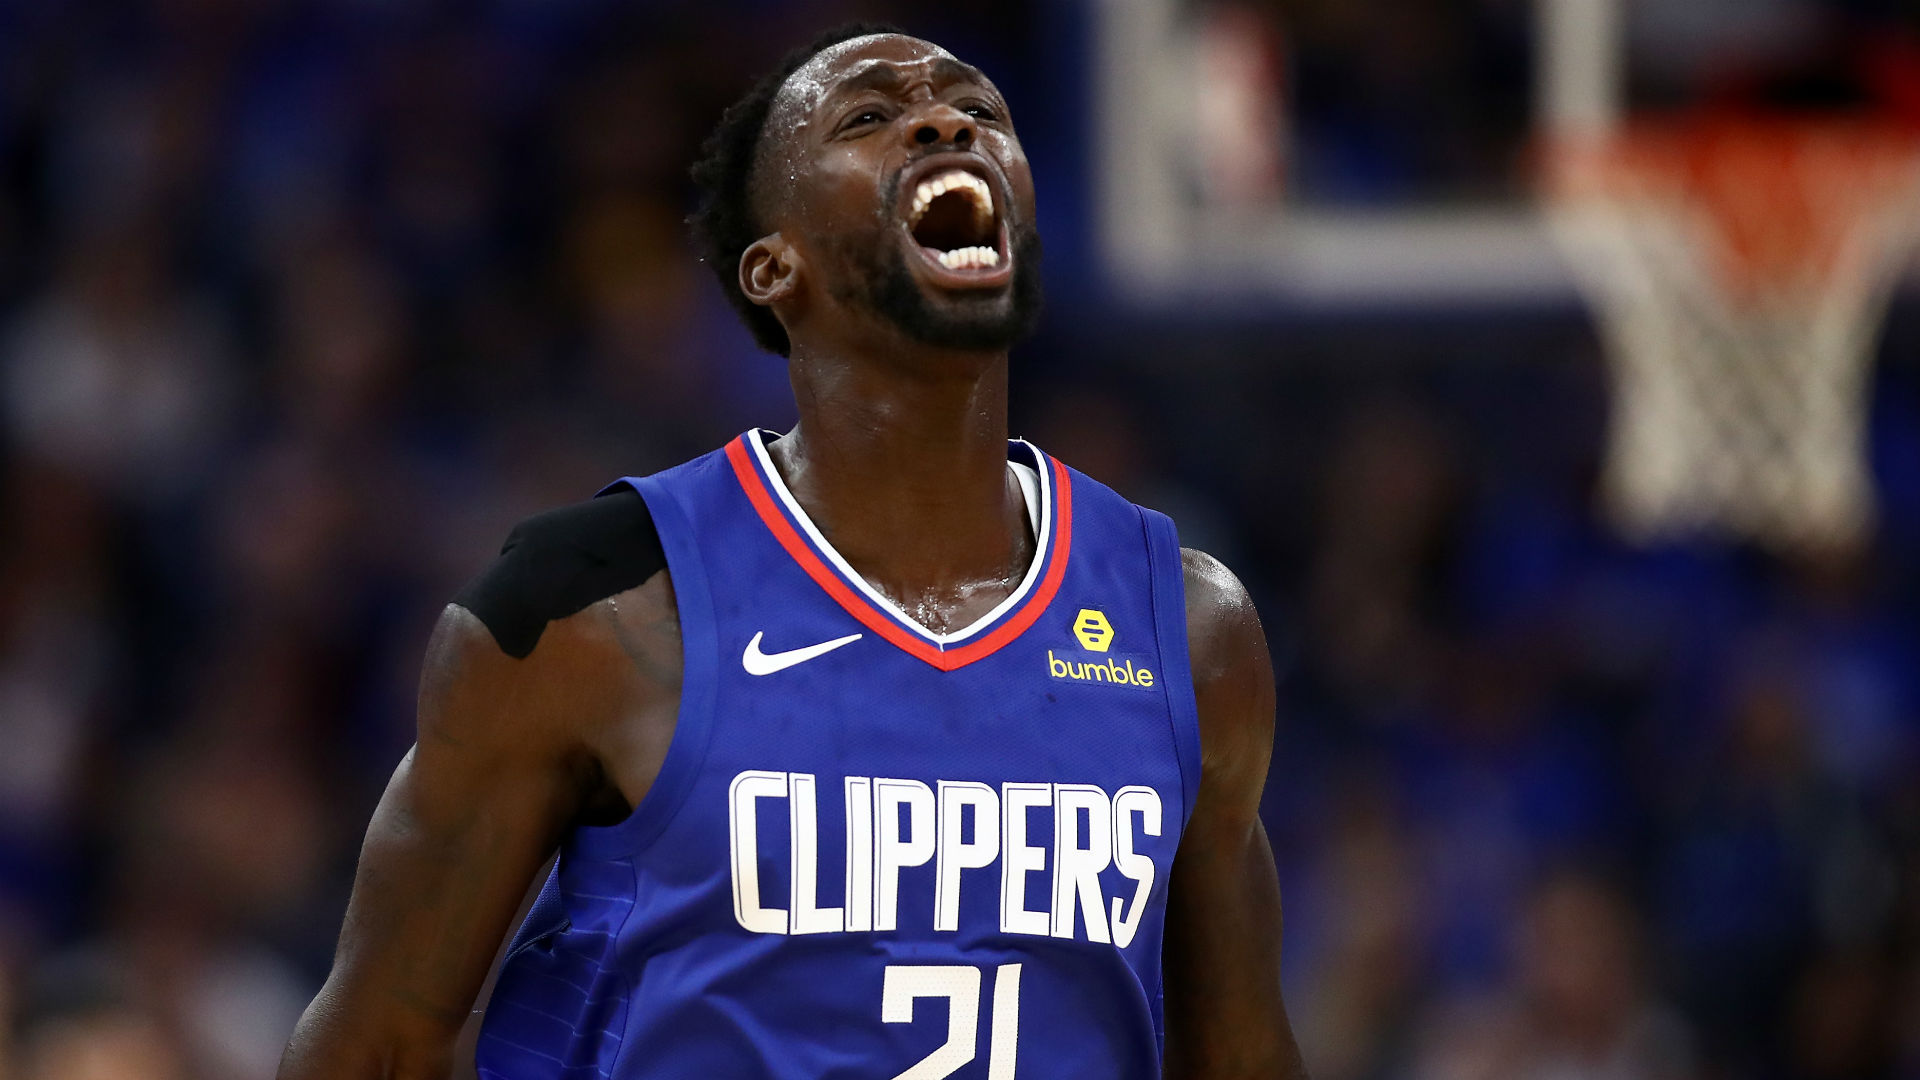 Clippers 'Patrick Beverley blamed Flagrant 2 for a foul on Chris Paul's Suns